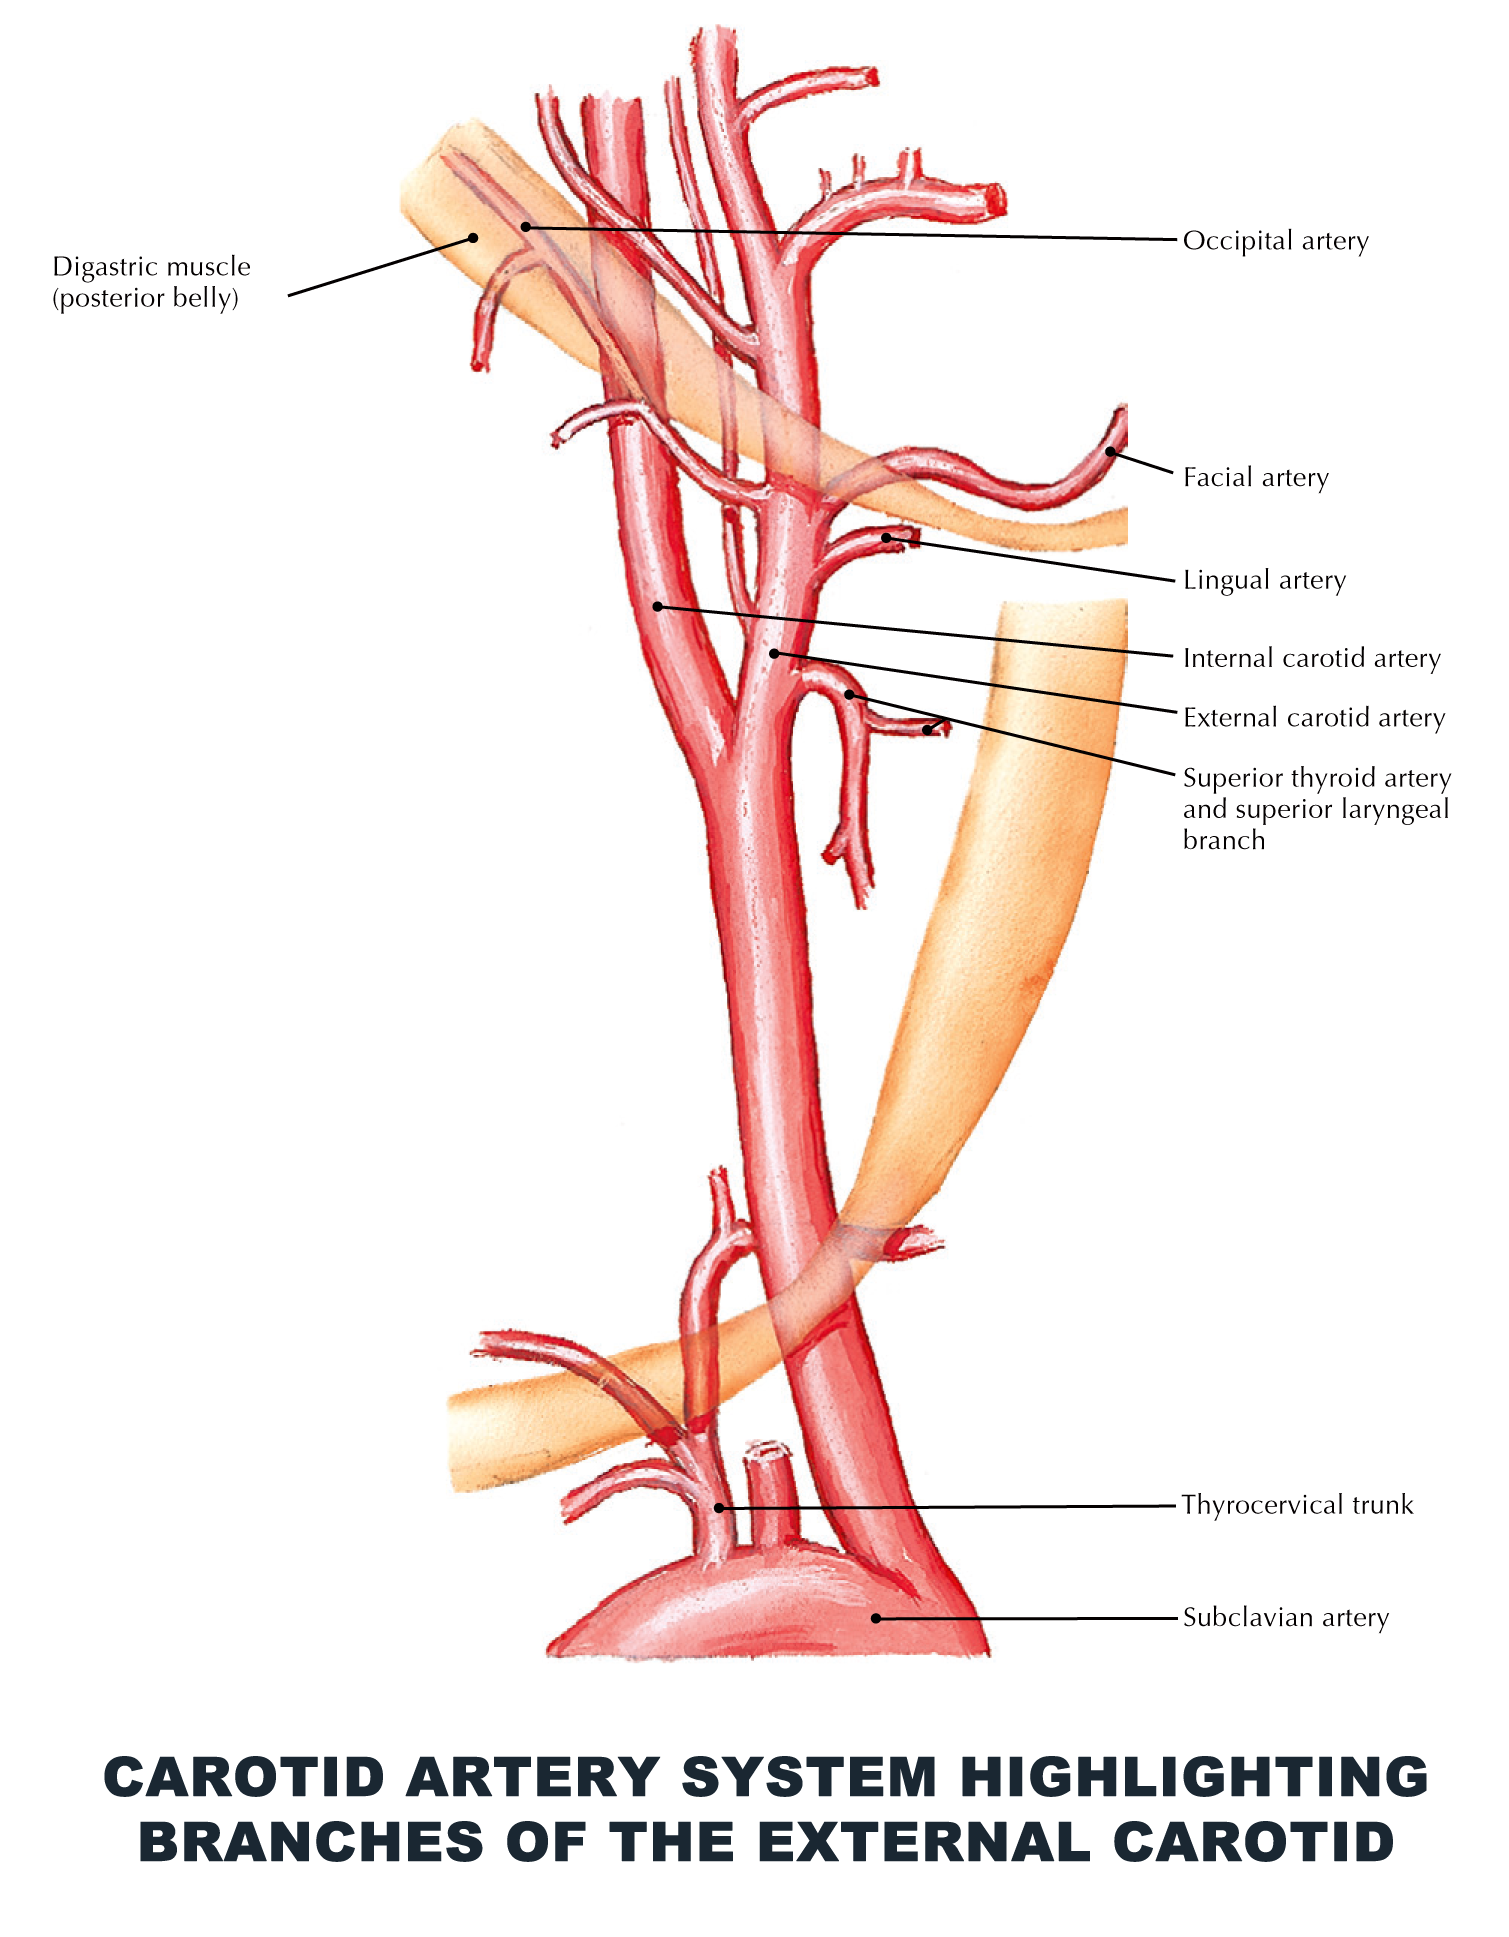 Carotid artery system highlighting branches of the external carotid ...